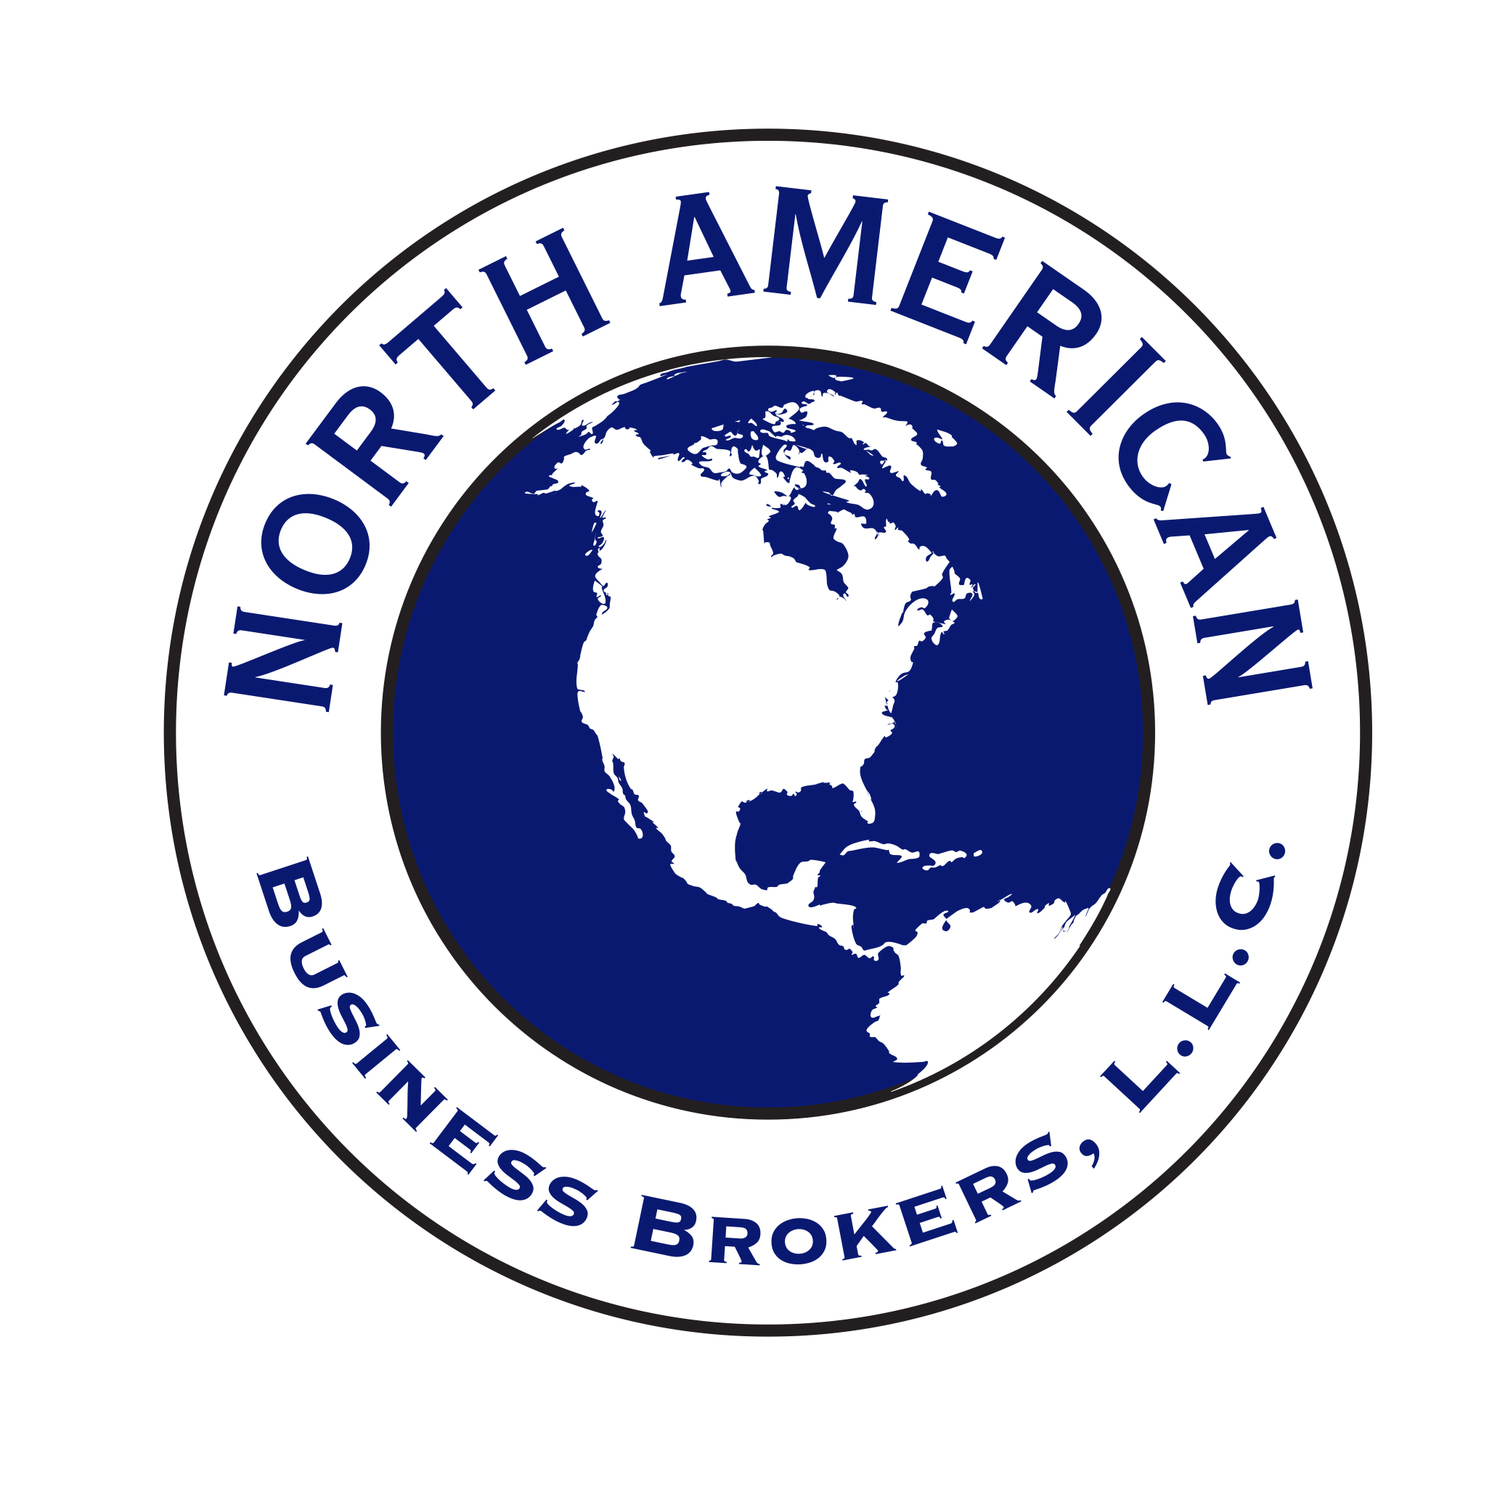 North American Business Brokers, LLC